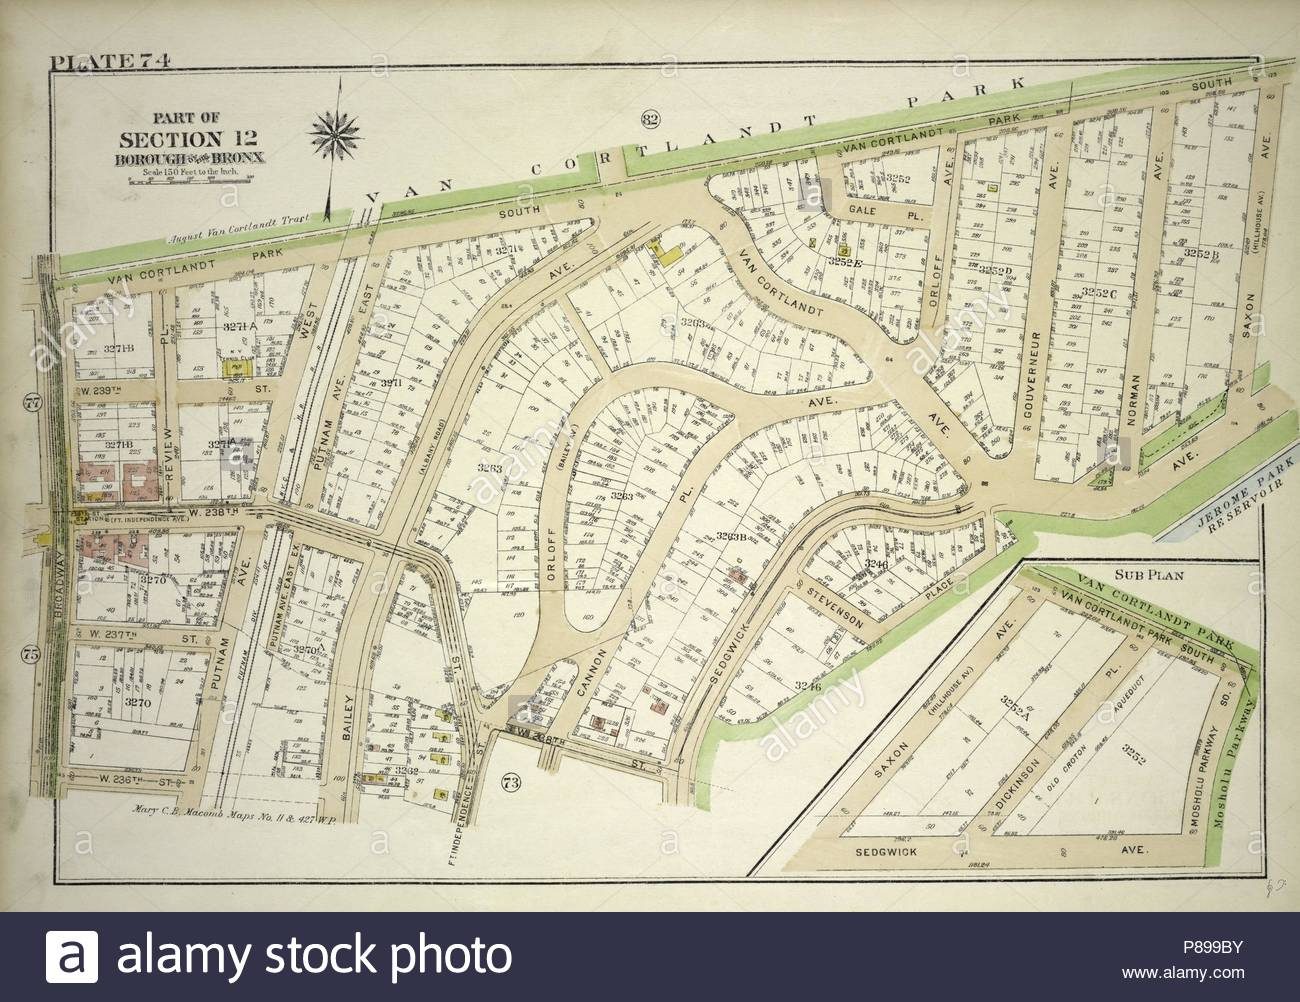 Plate 74, Part of Section 12, Borough of the Bronx. Bounded by Van ...